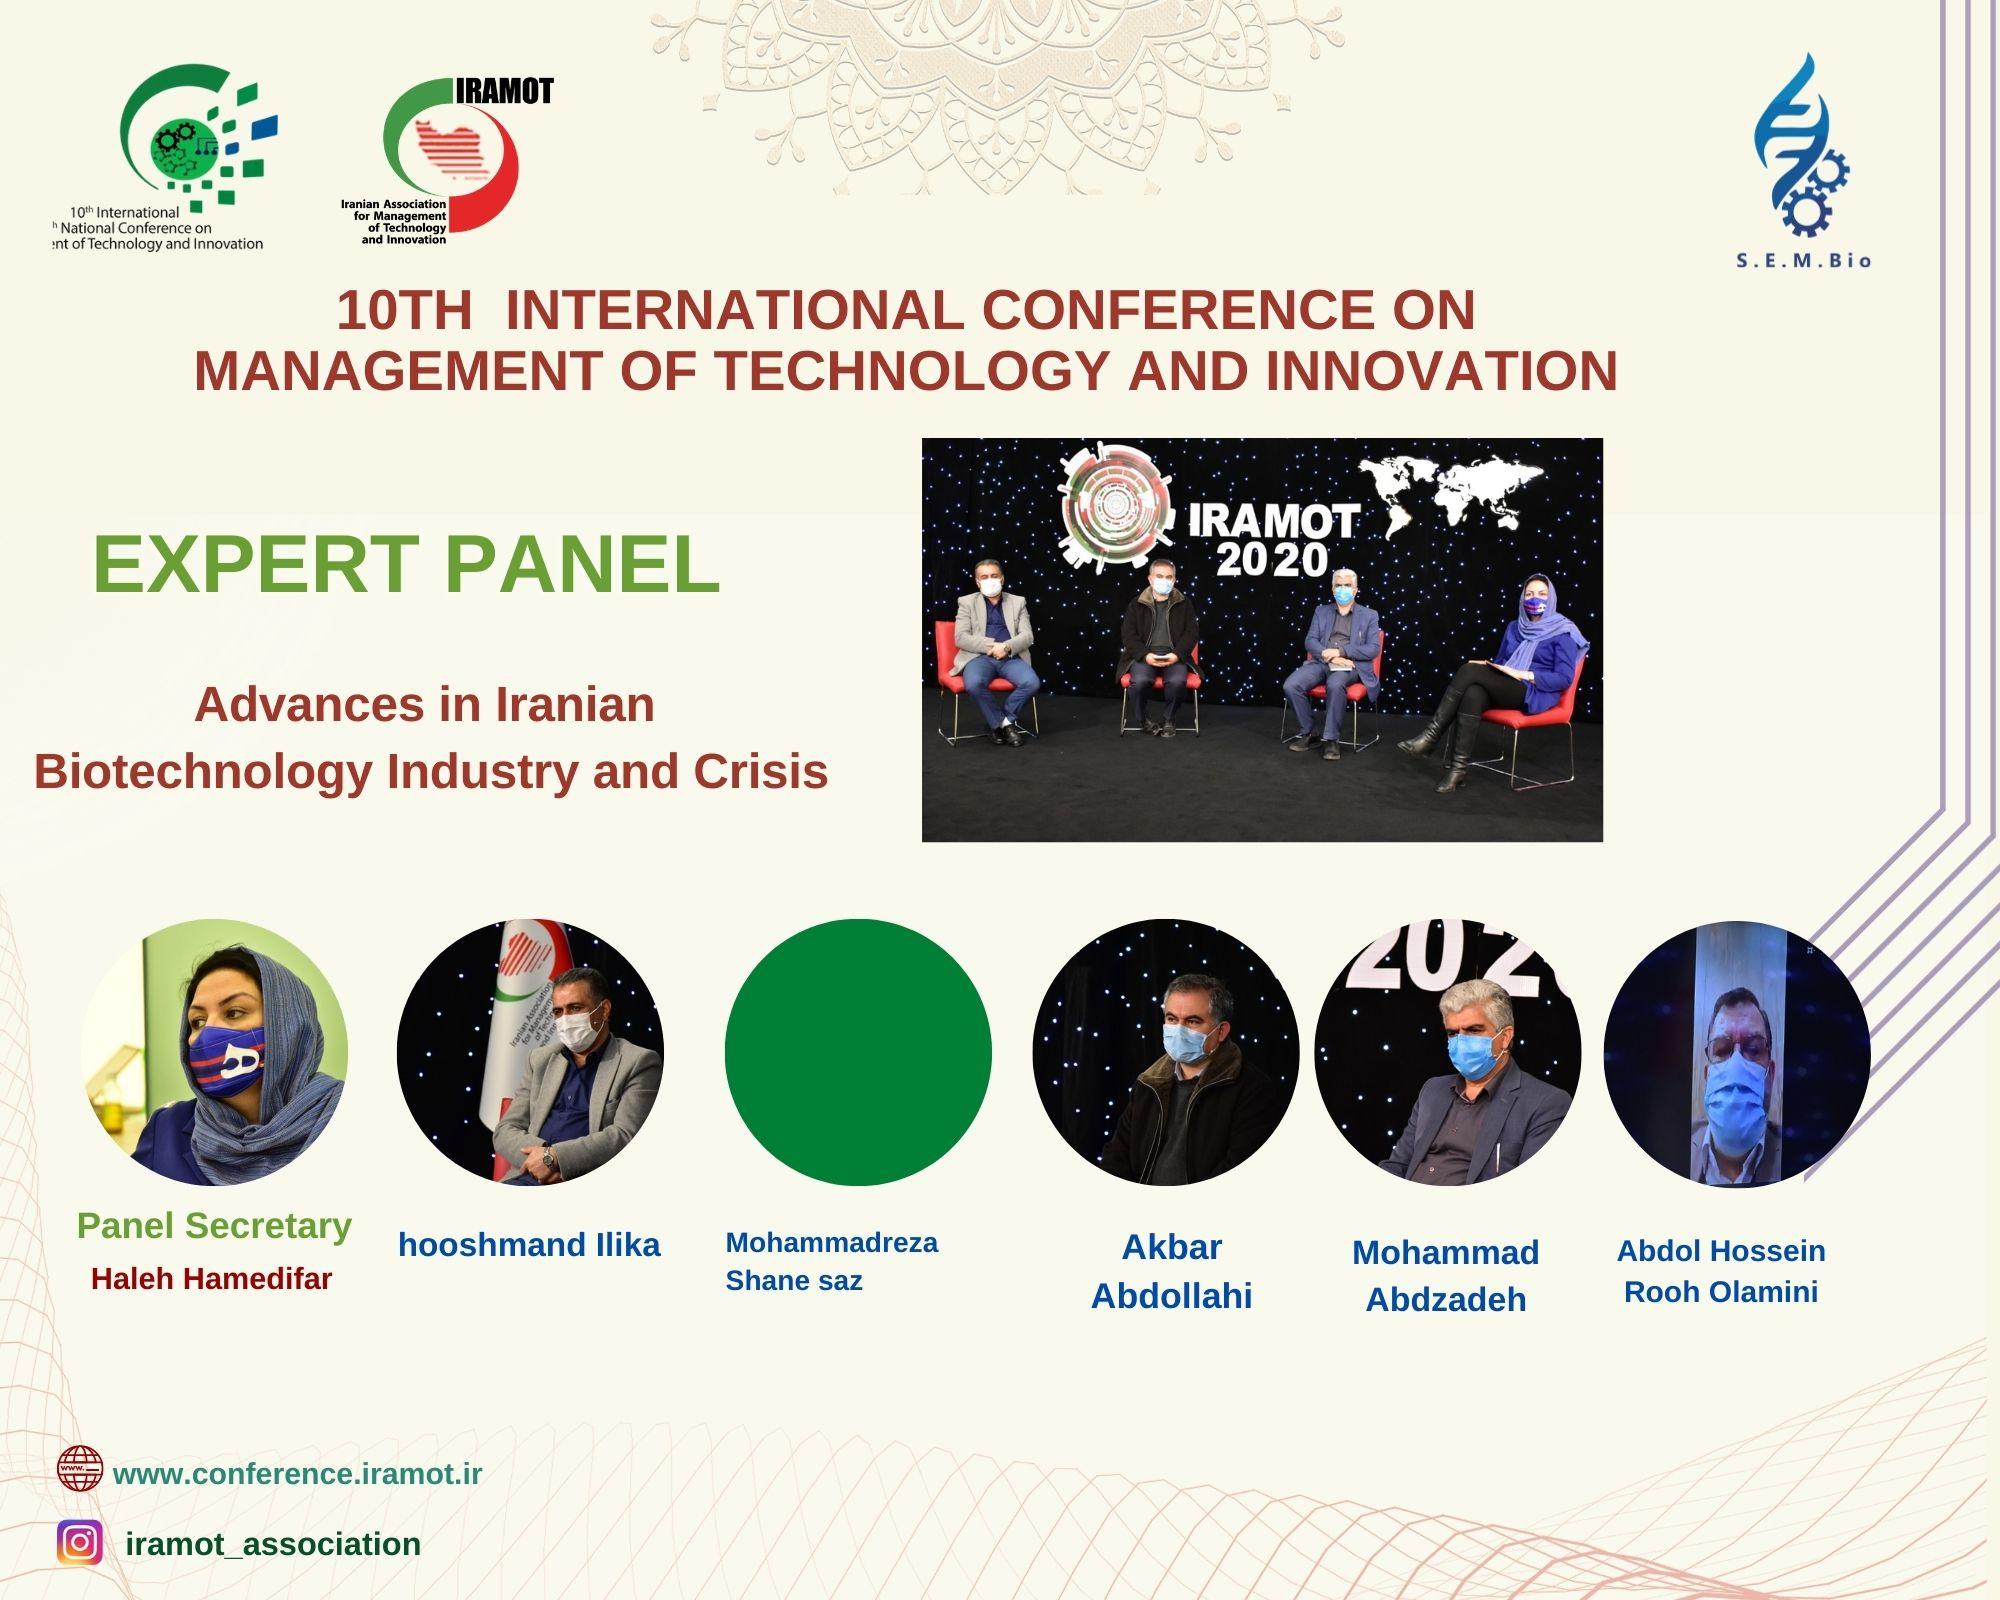 http://www.conference.iramot.ir/wp-content/uploads/2020/12/پانل-تخصصی-3.jpg